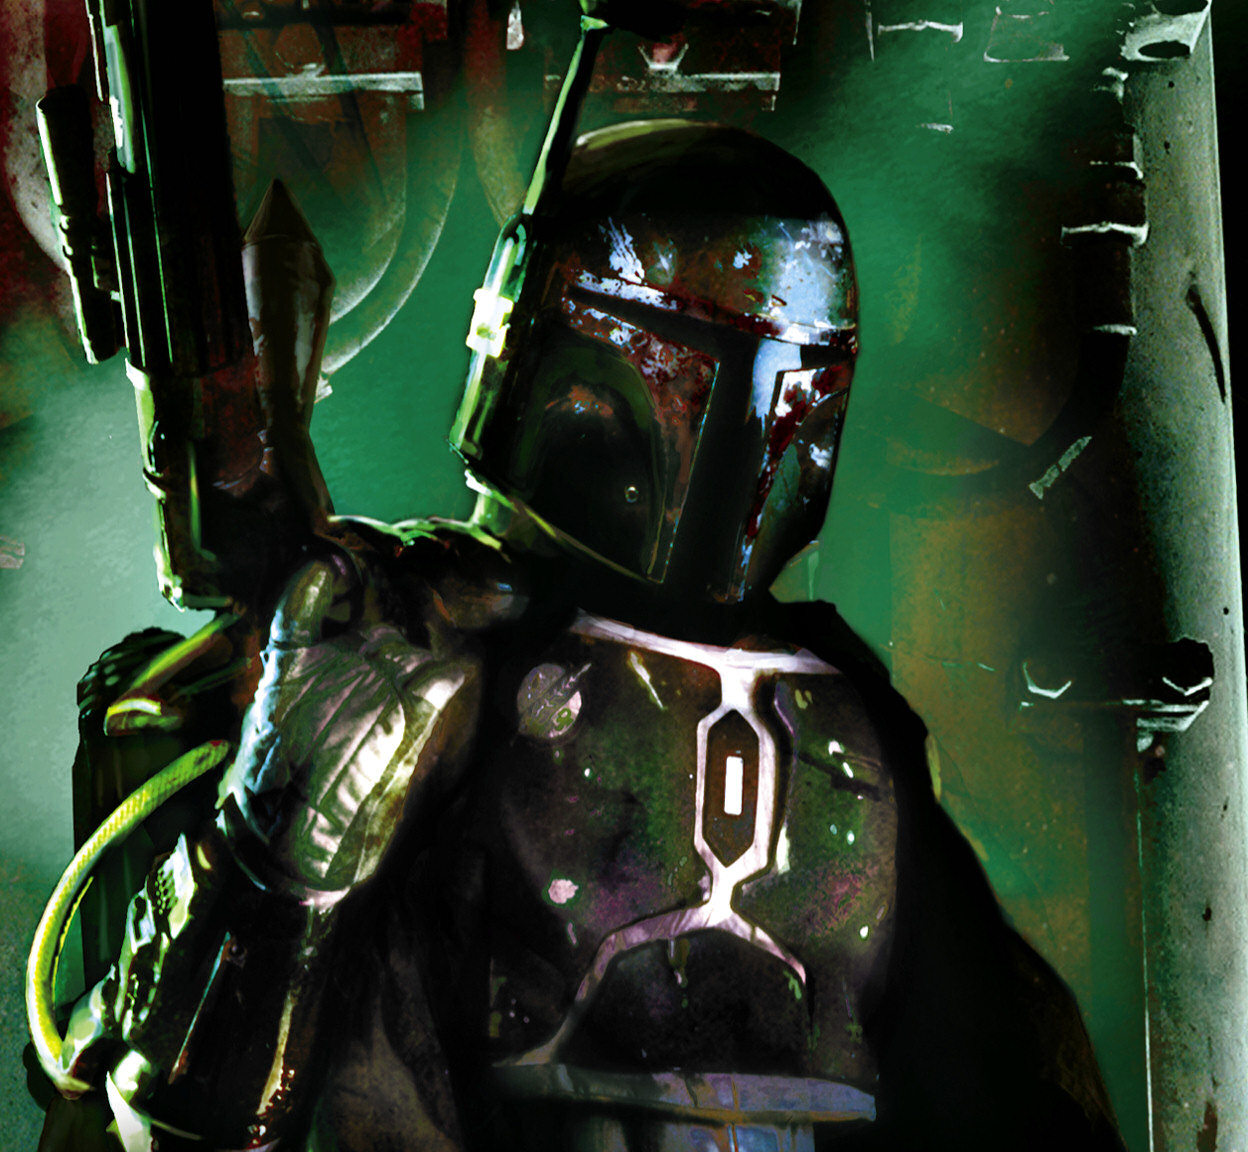 http://images.wikia.com/starwars/images/1/1f/BobaFett-BloodlinesCover.jpg